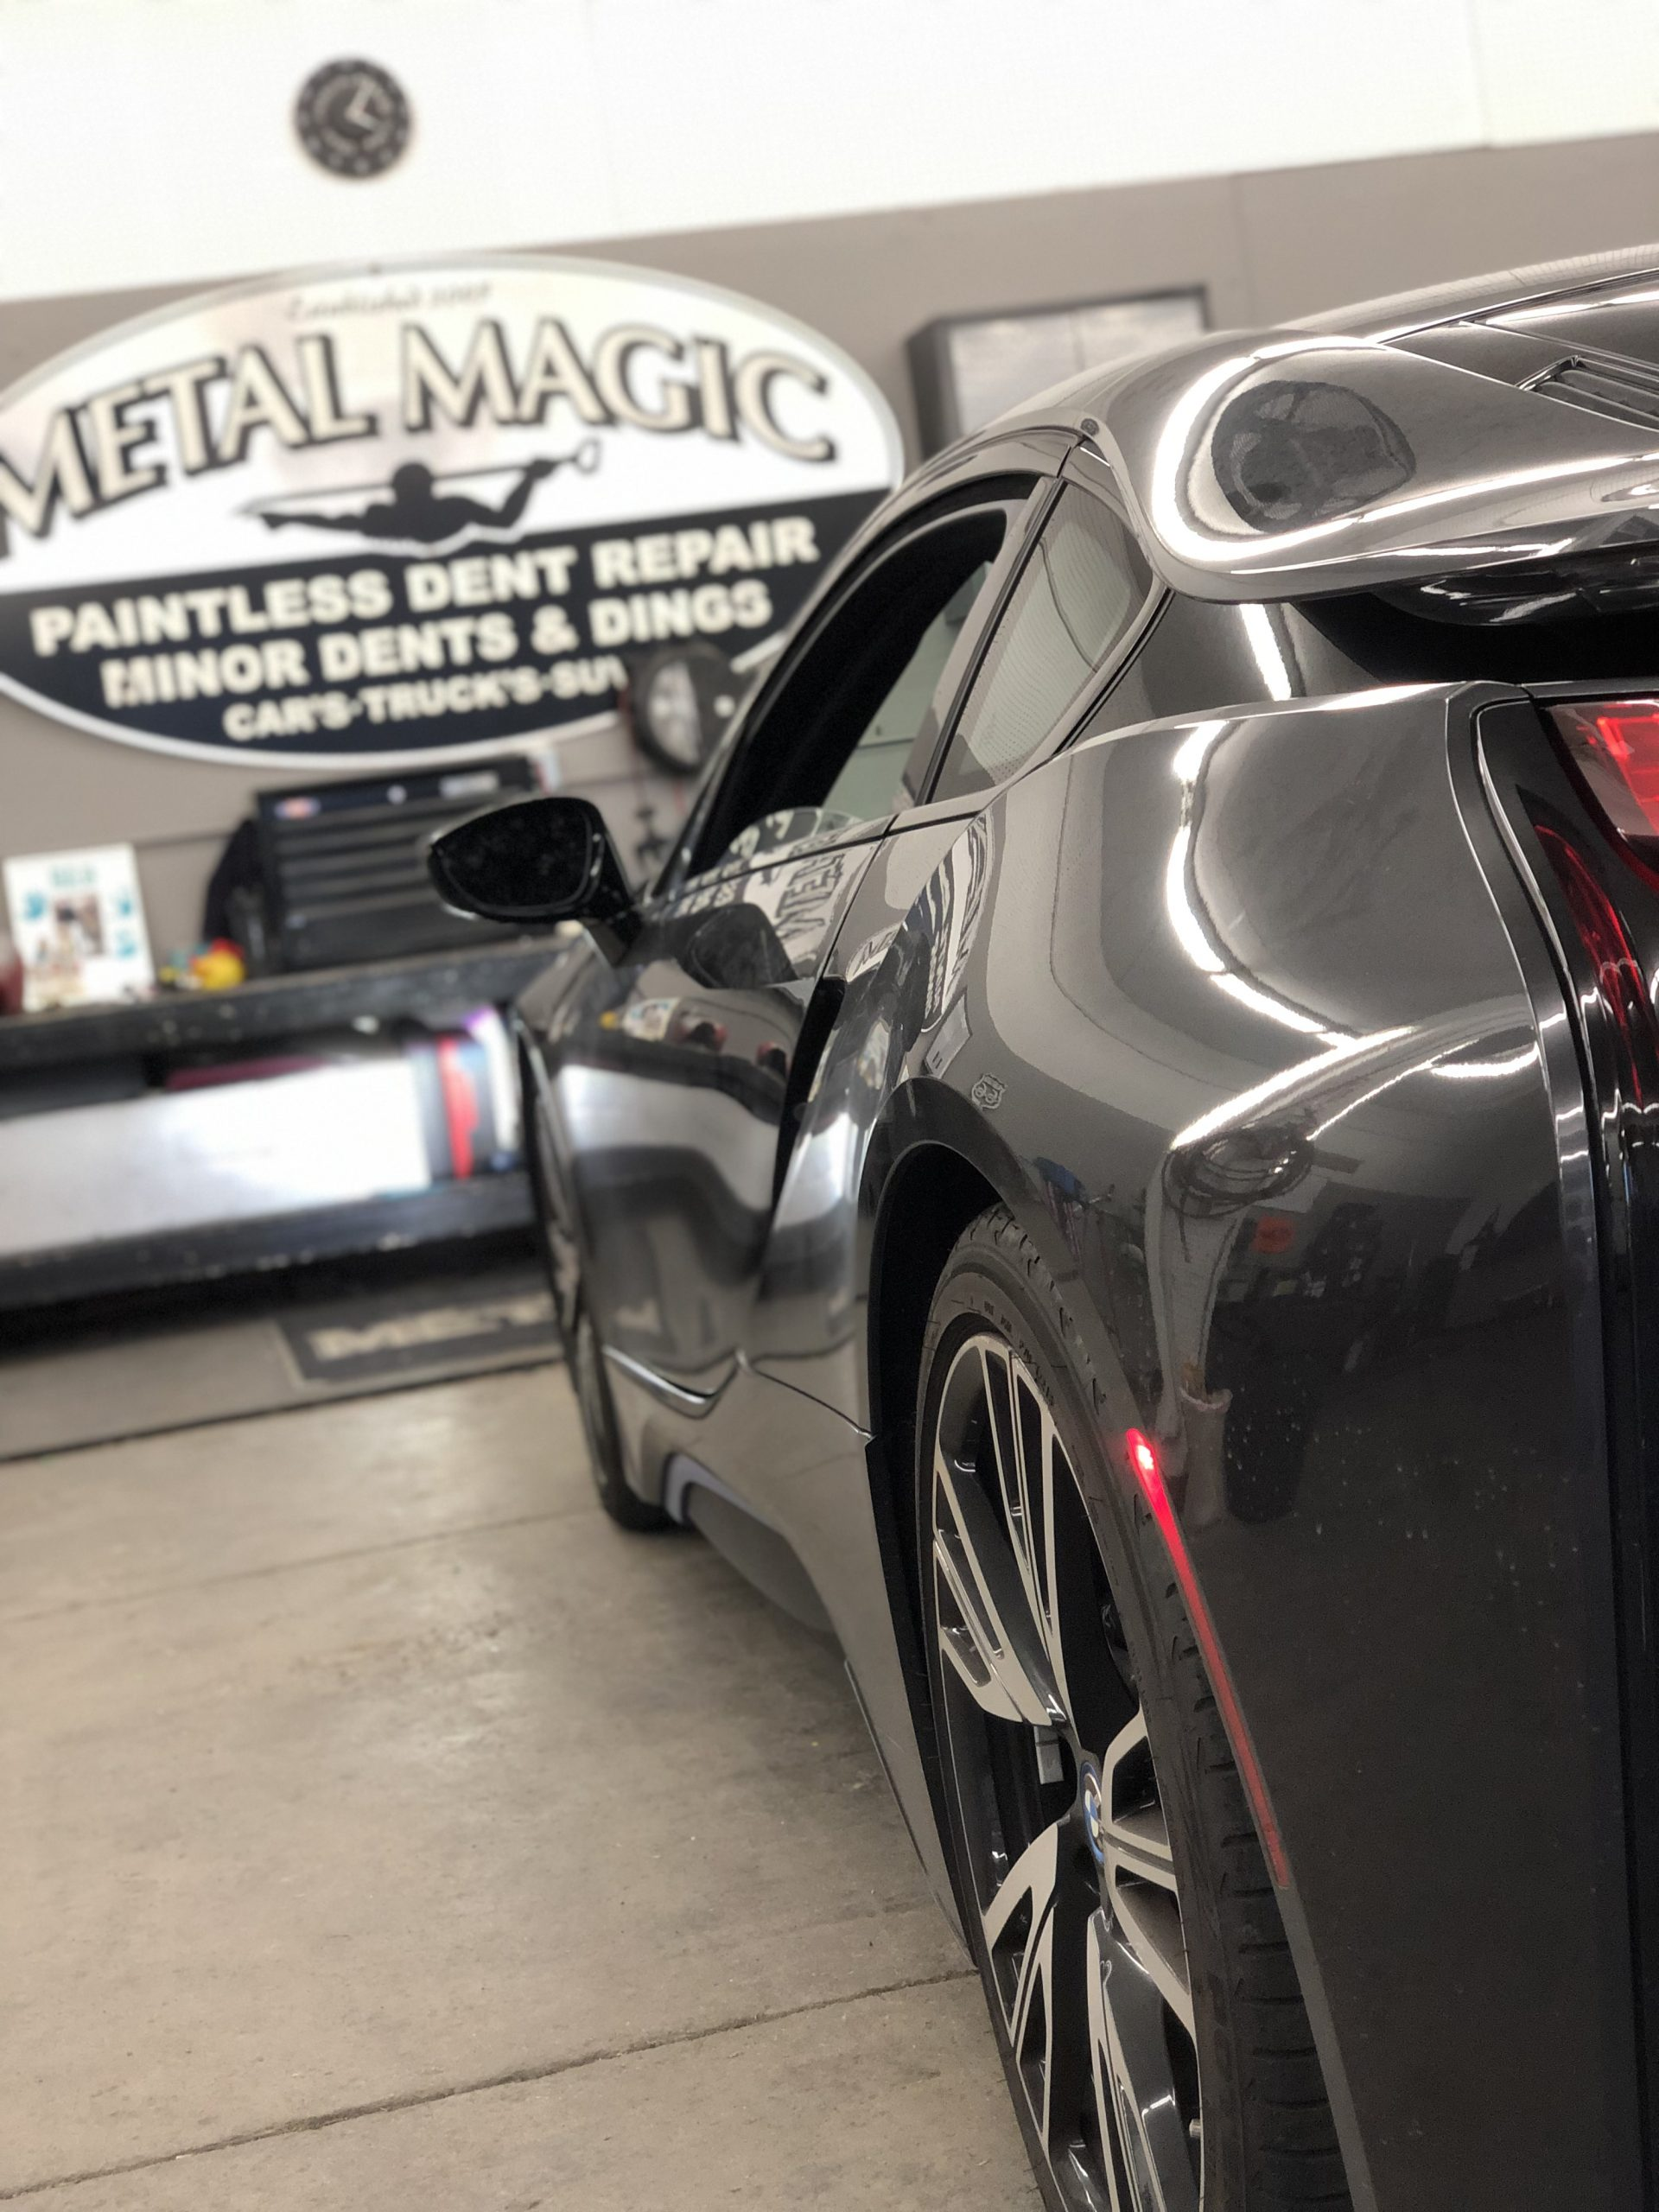 Metal Magic for high quality automotive service